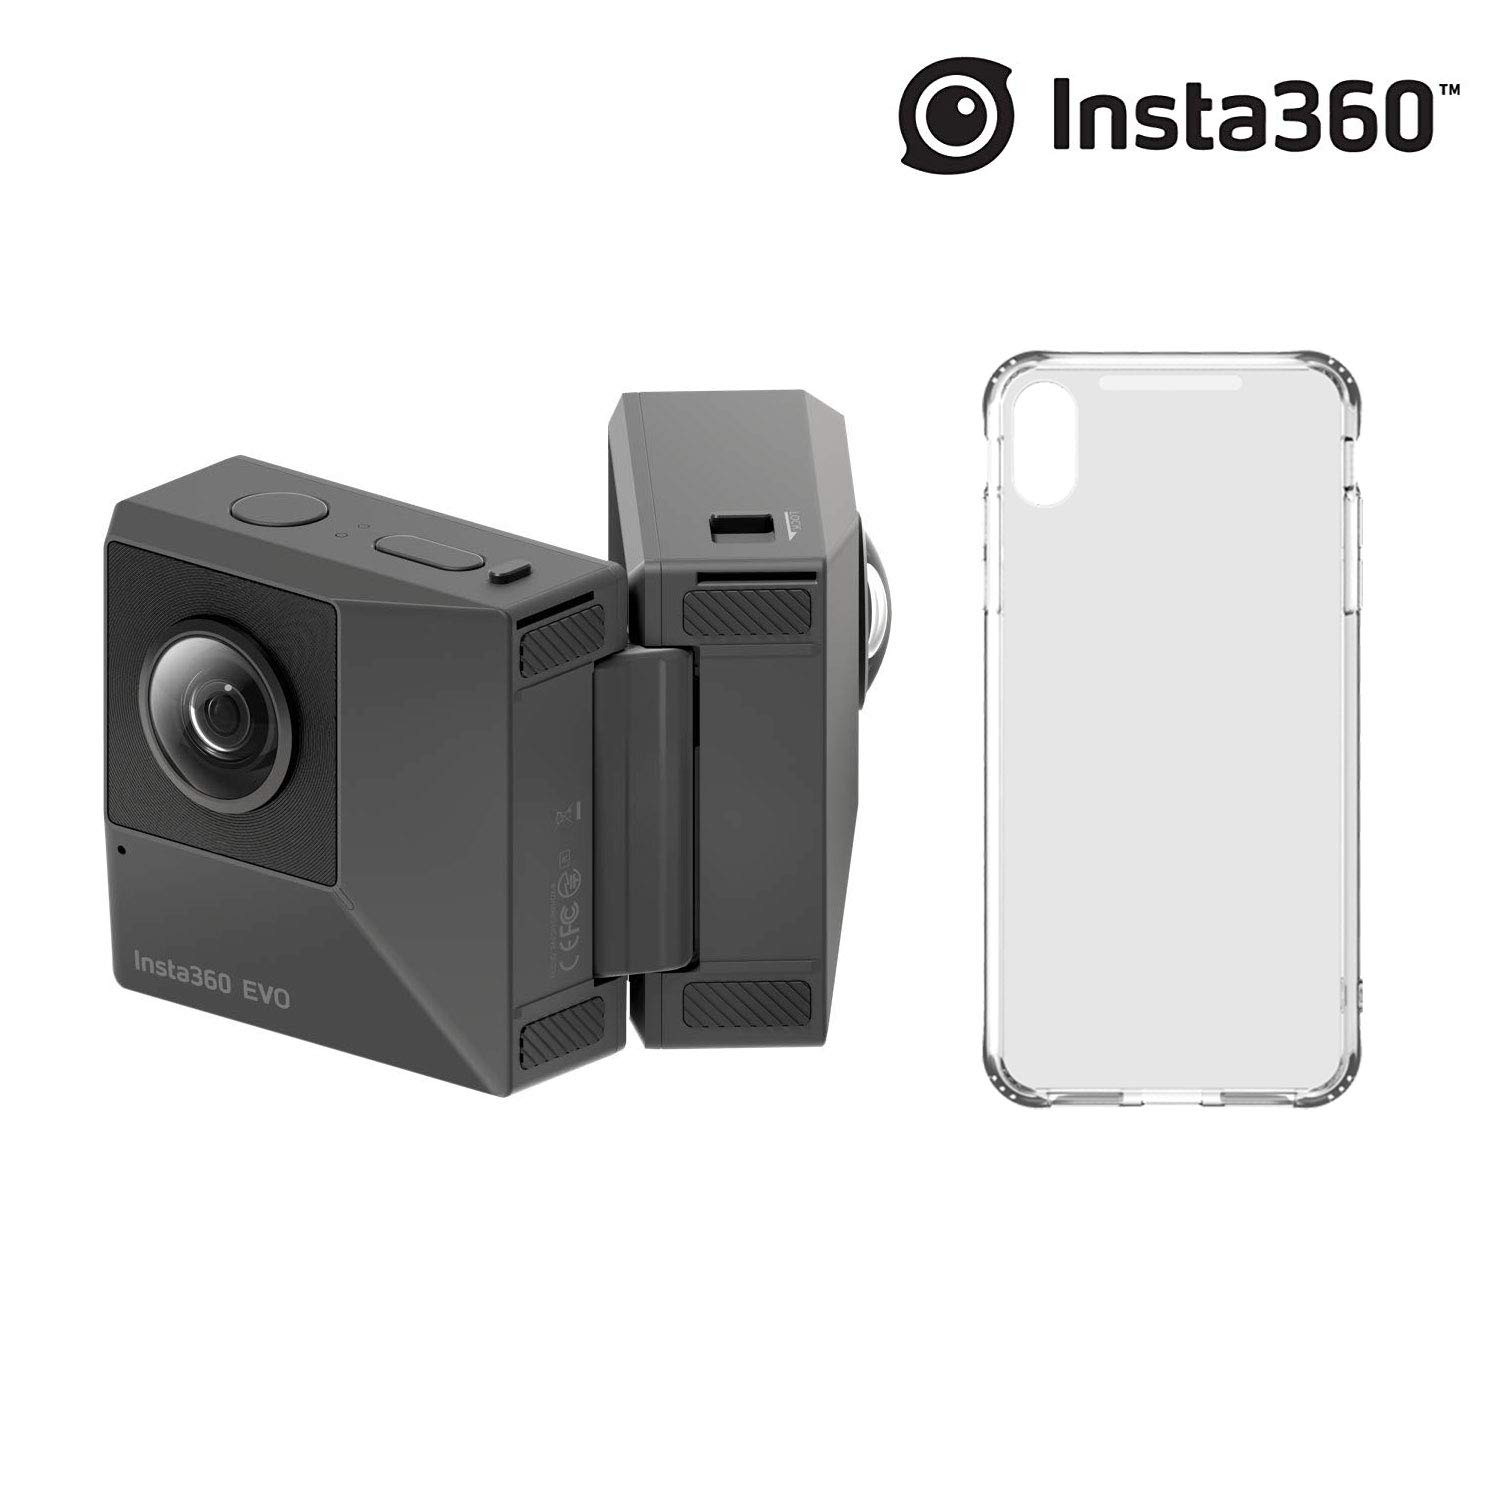 Insta360 EVO + Holoframe, 180 Degree 3D and 360 Fold-able Camera, 5.7K Videos + 18MP Photos, with FlowState Stabilization (EVO + Holo iPhone X/XS) by Insta360